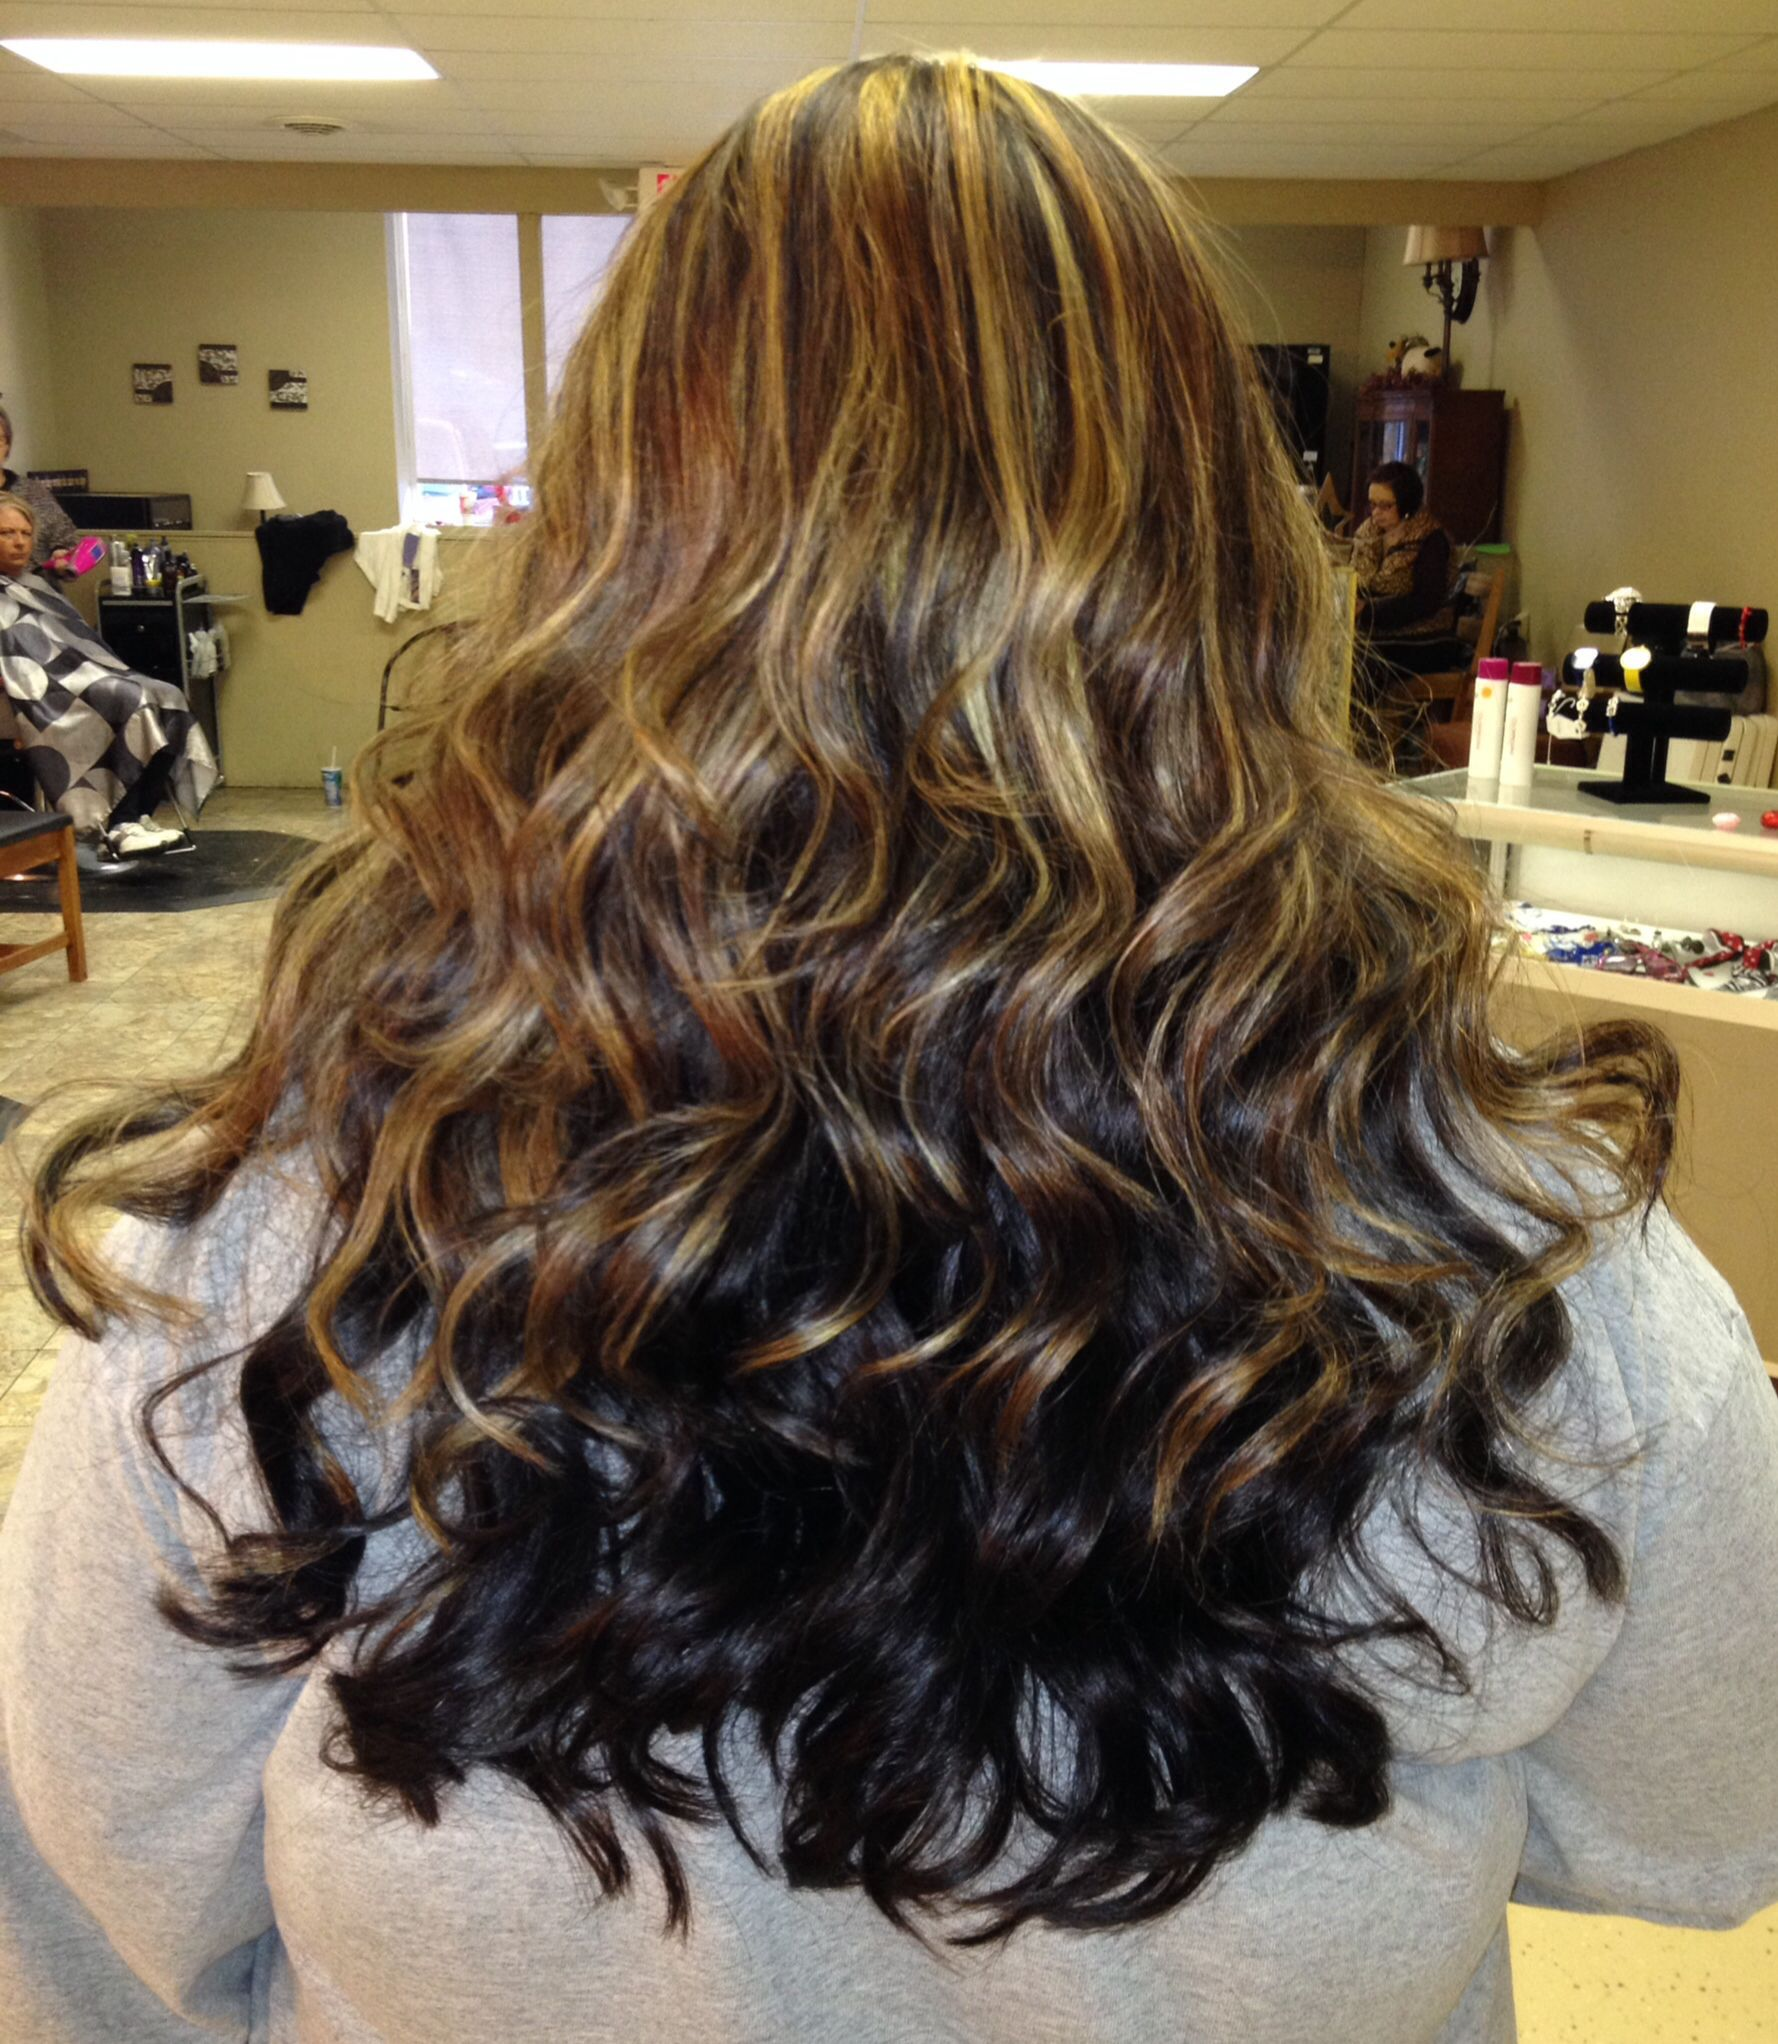 Caramel Highlights With A Dark Gold Based Brown Underneath